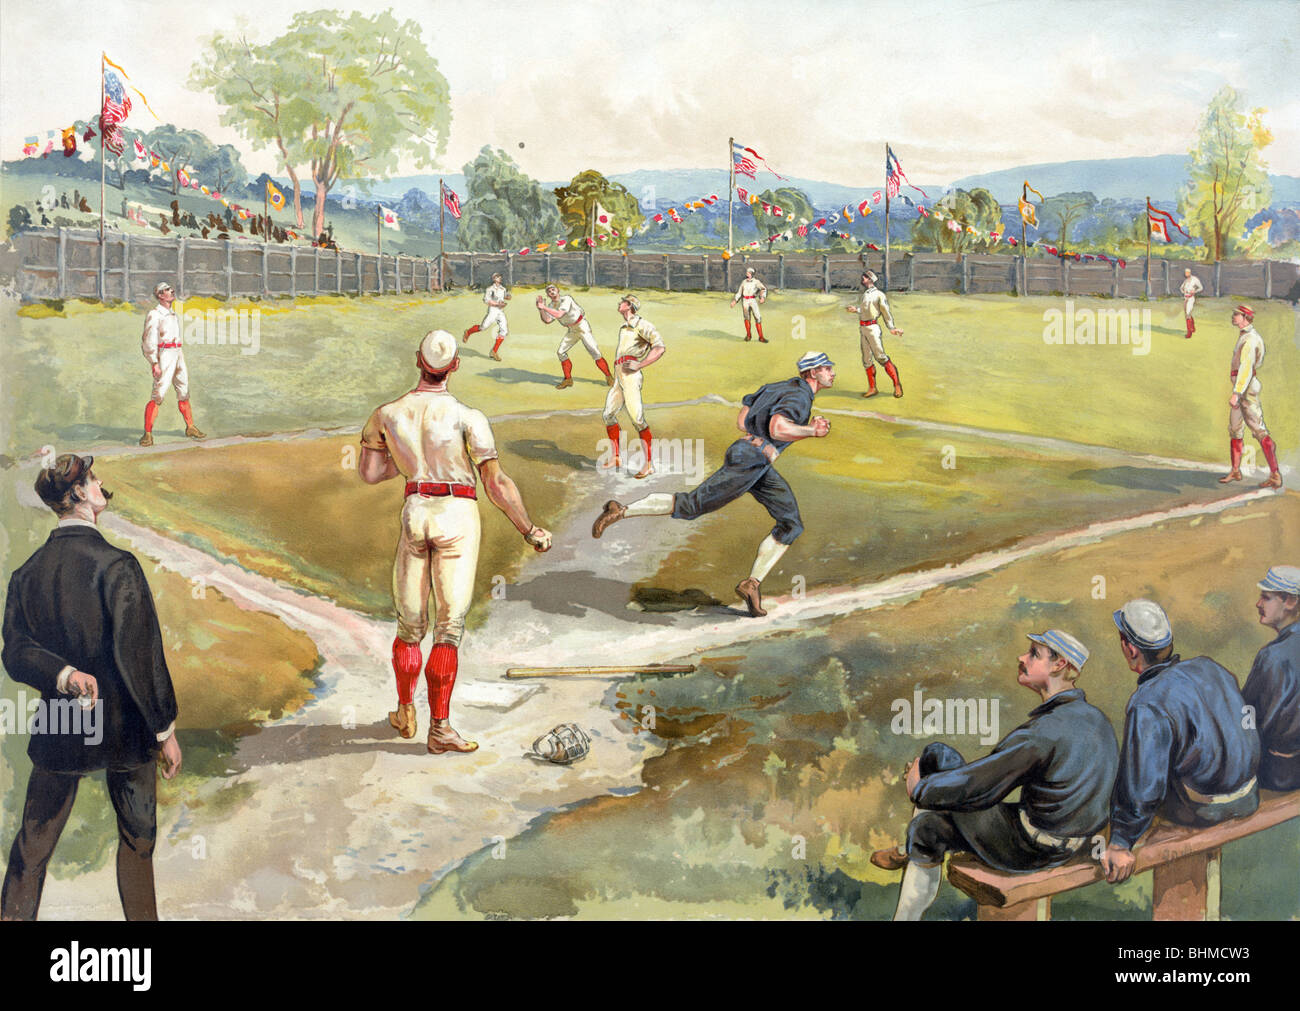 Lithograph colour print c1887 depicting an early game of baseball in the United States of America. - Stock Image